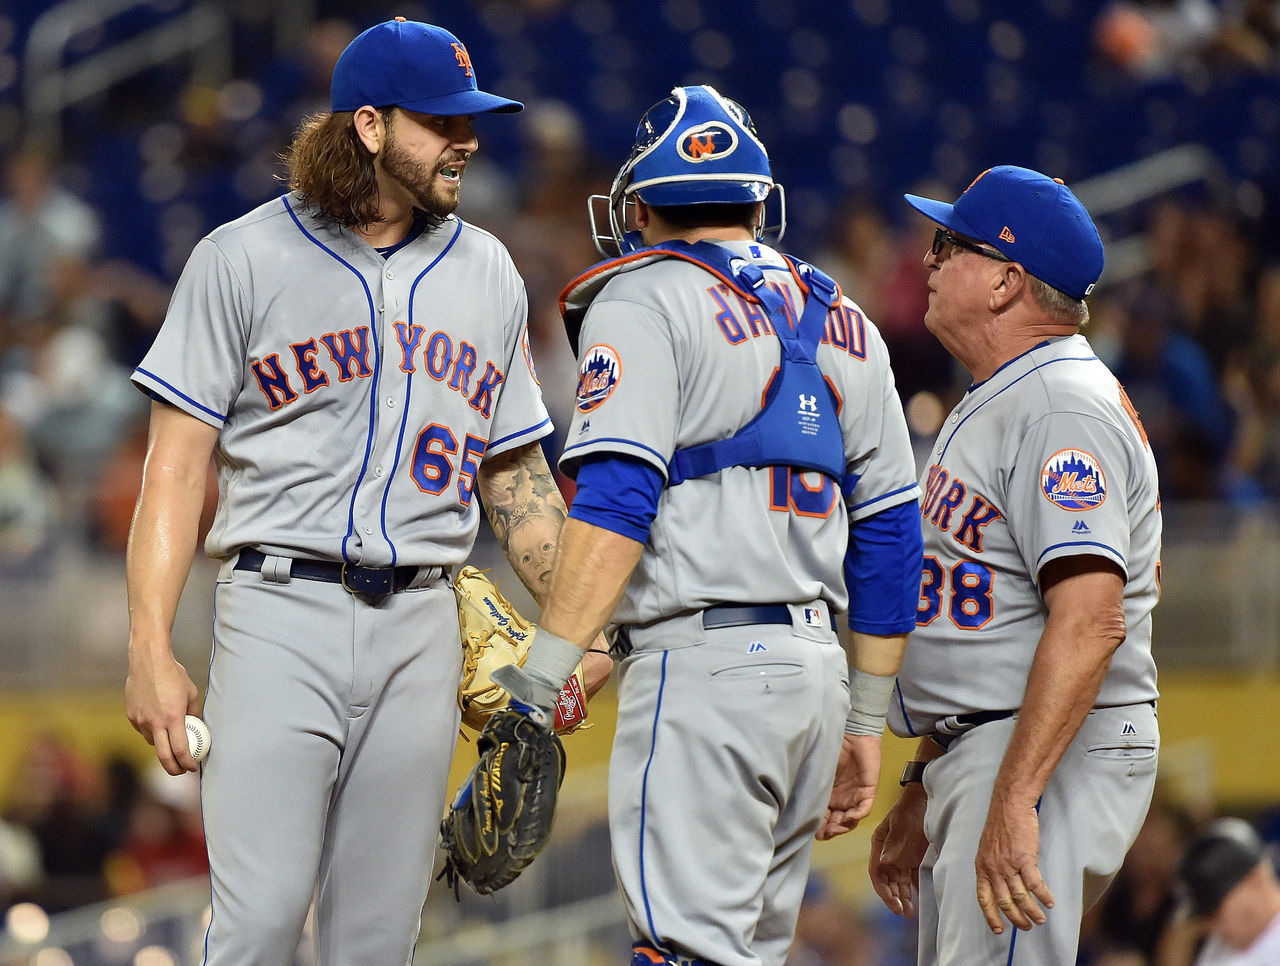 Cropped_2017-06-27t235725z_1367450459_nocid_rtrmadp_3_mlb-new-york-mets-at-miami-marlins